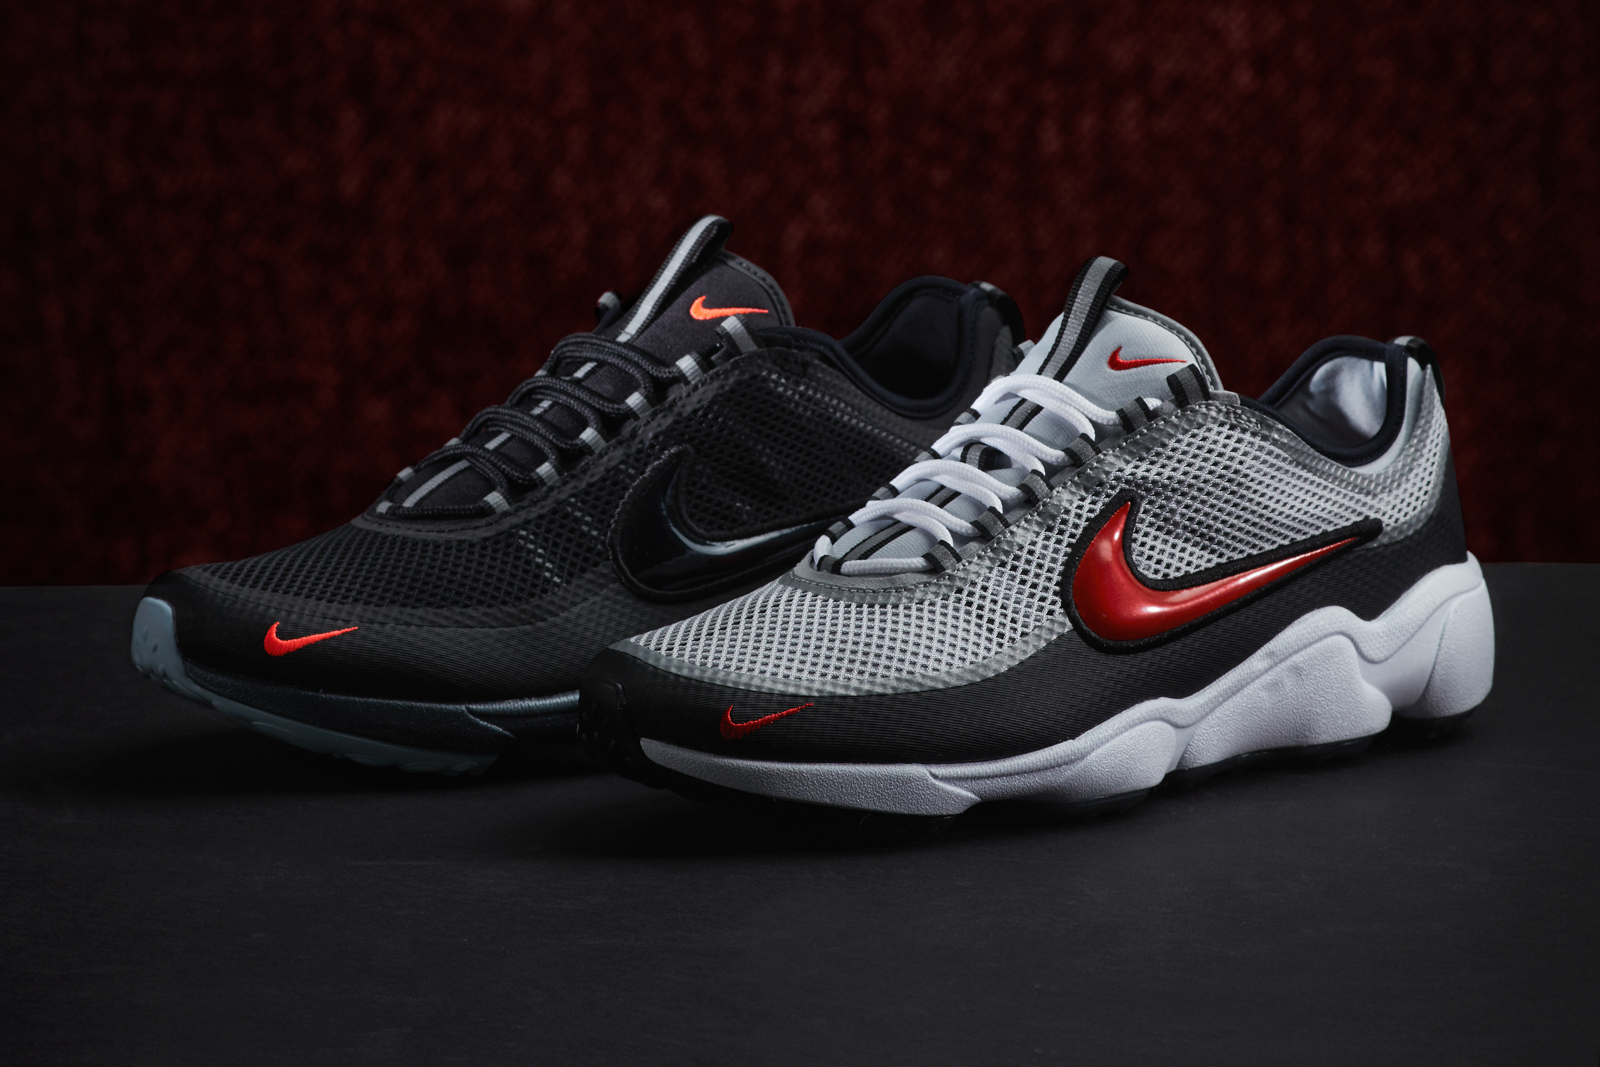 nike air zoom spiridon ultra size blog. Black Bedroom Furniture Sets. Home Design Ideas